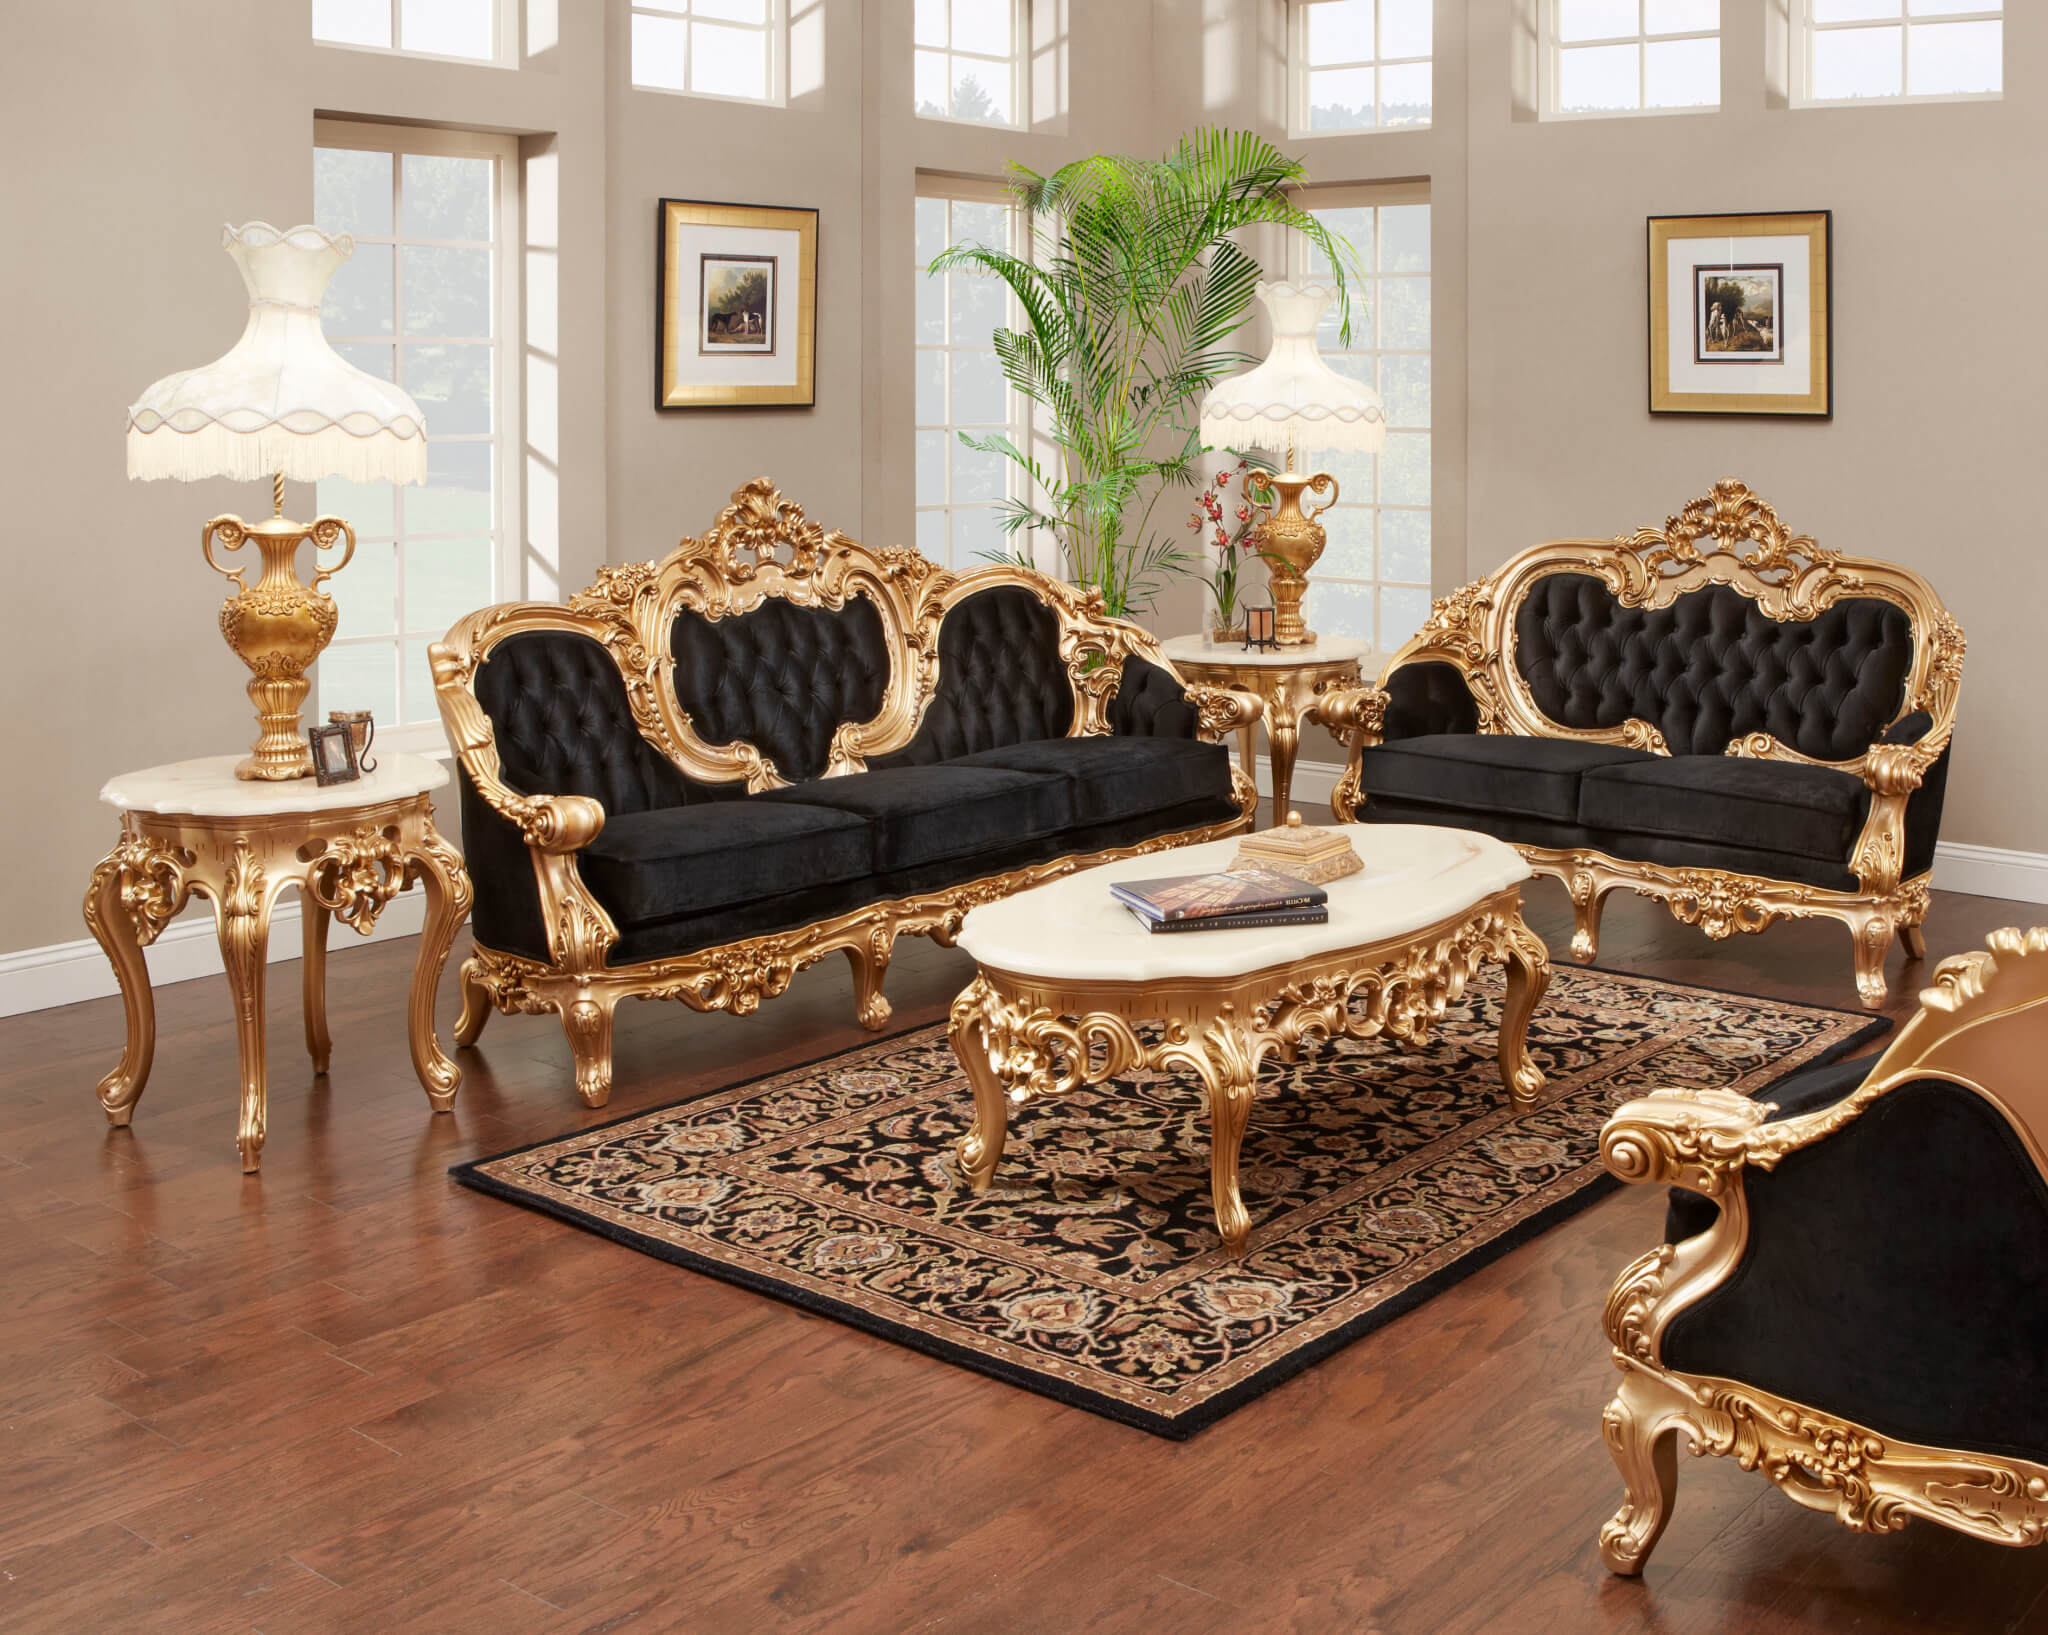 French Gold Leaf Living Room Set regarding 11 Smart Tricks of How to Craft Deals On Living Room Sets